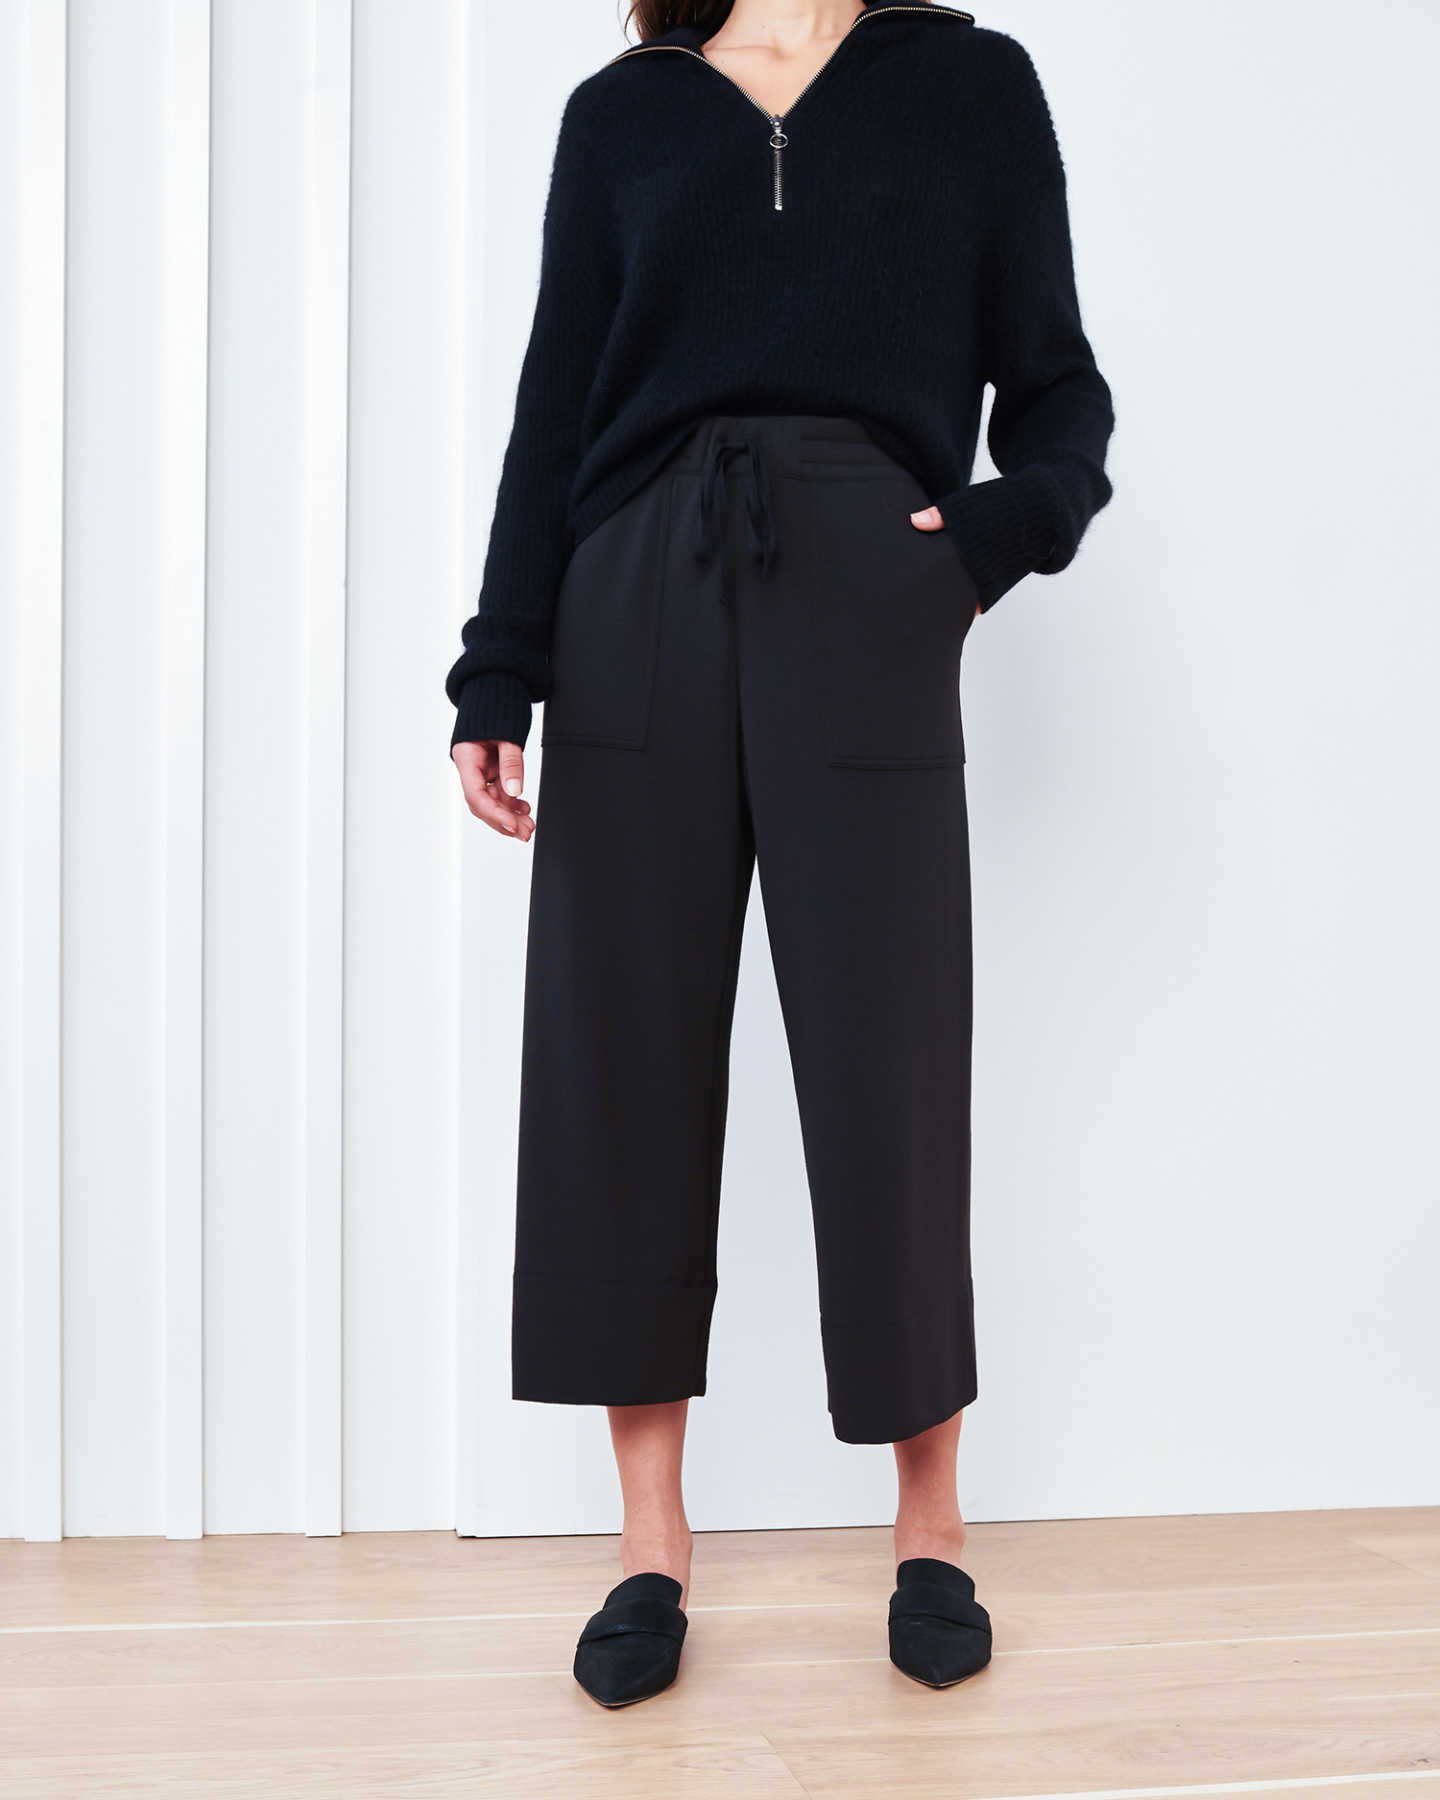 SuperSoft Fleece Wide Leg Pants - Black